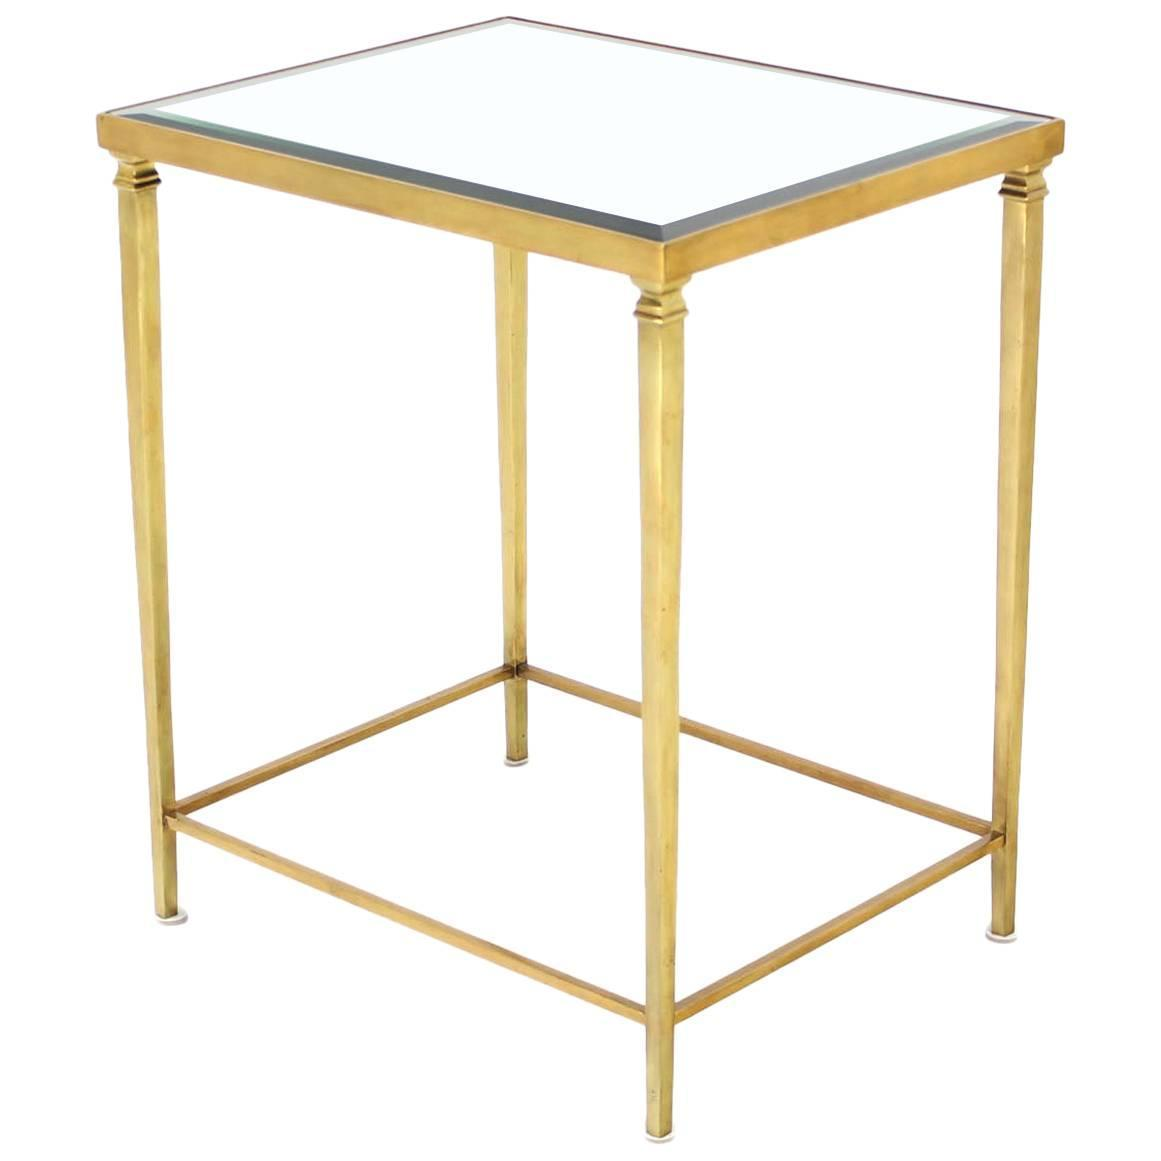 Solid brass tapered leg glass top side table for sale at